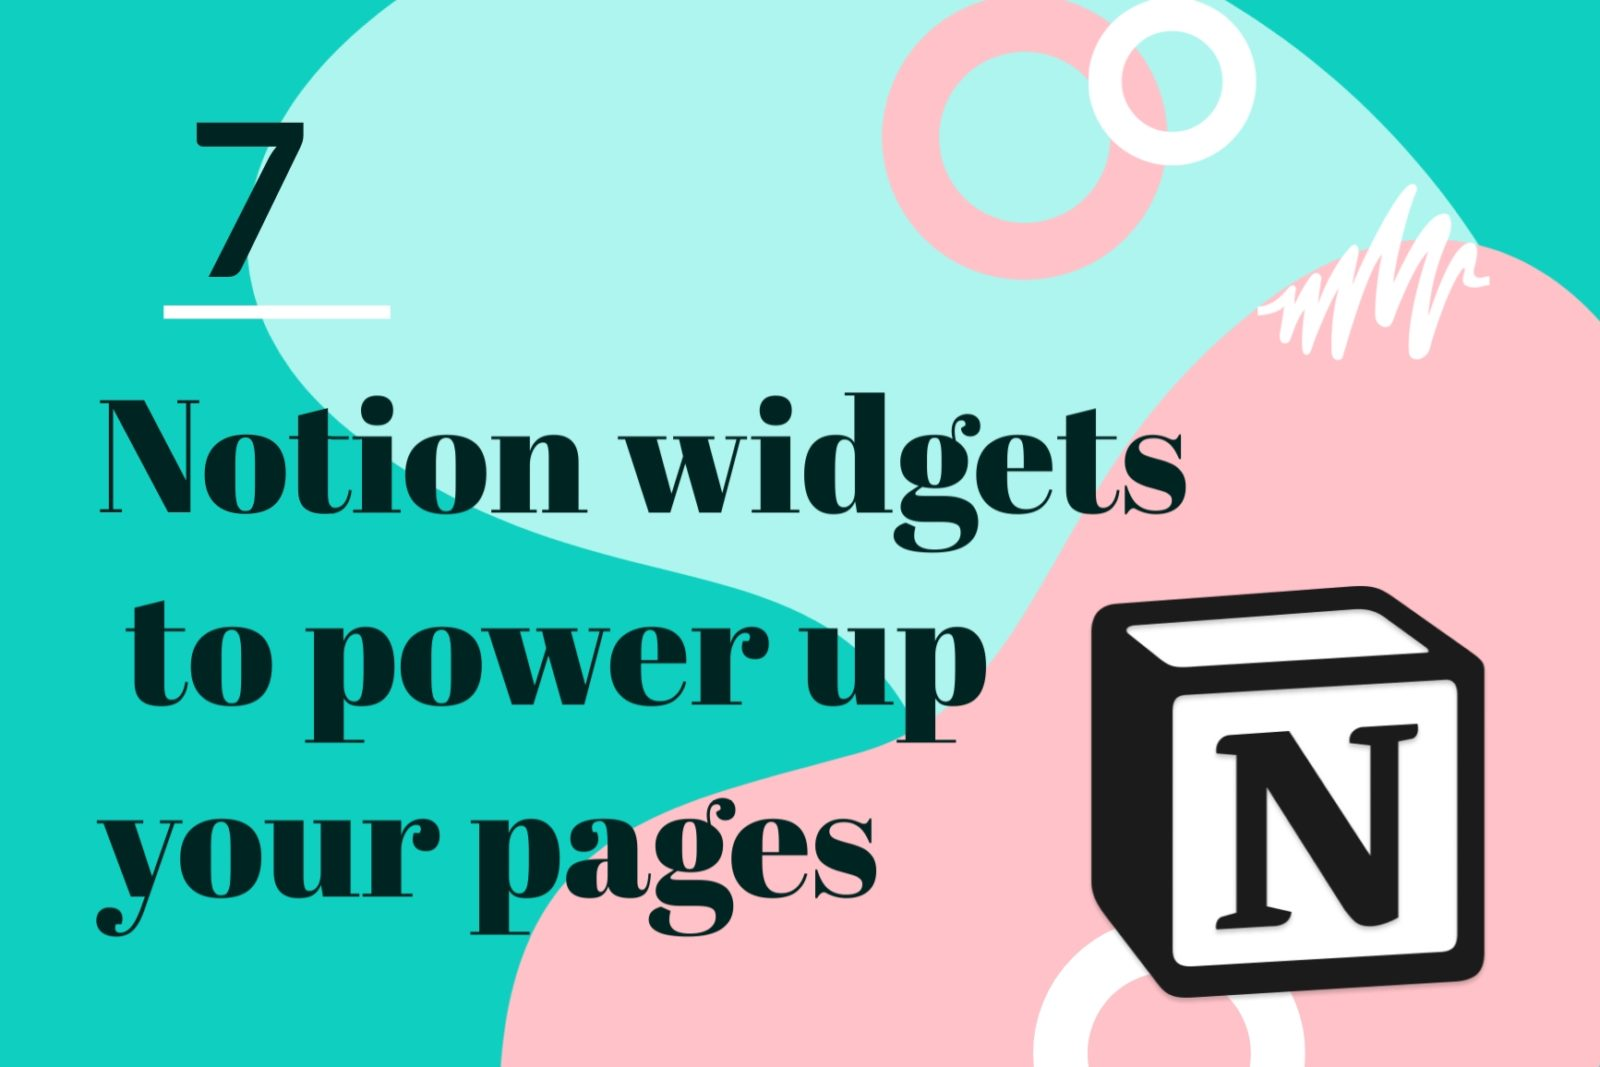 7 Notion widgets to power up your pages